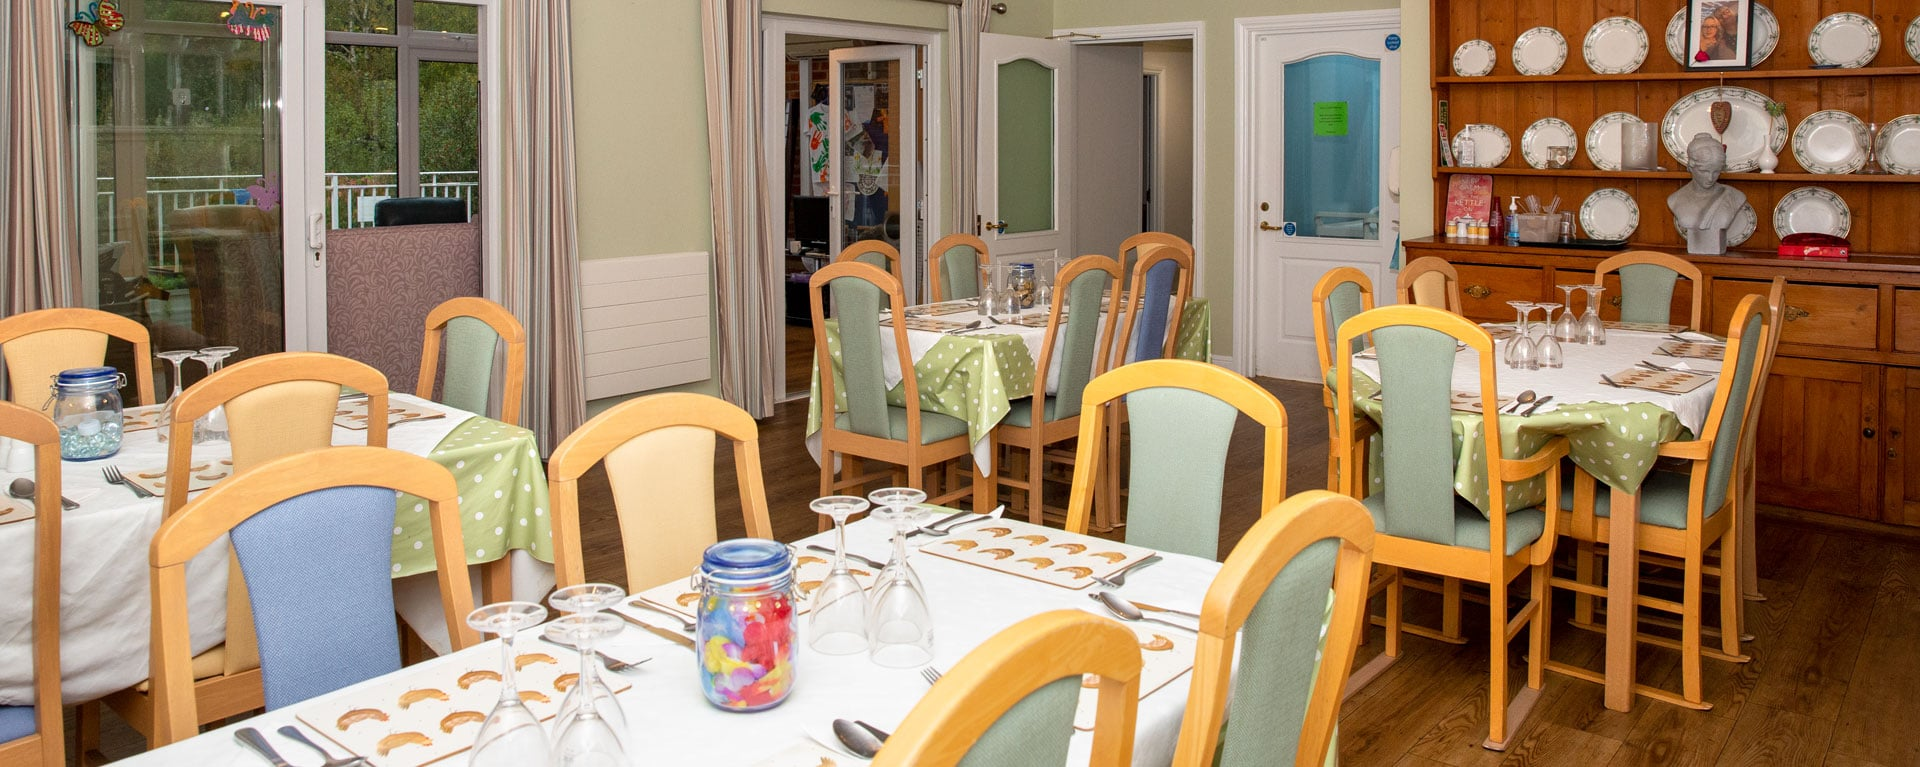 Full view of the care home's dining room ready for lunch